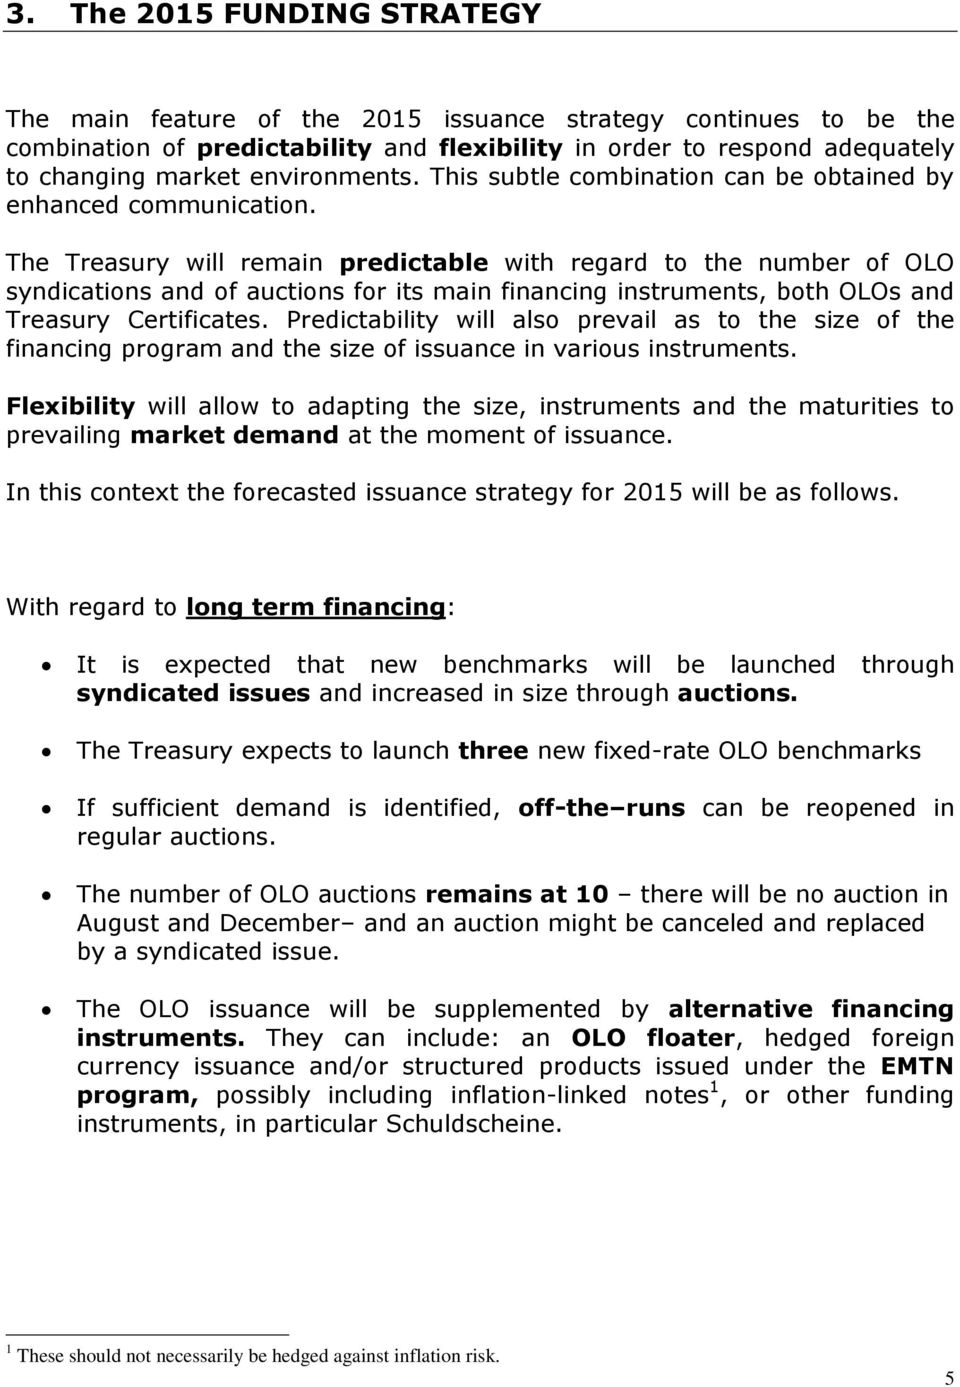 The Treasury will remain predictable with regard to the number of OLO syndications and of auctions for its main financing instruments, both OLOs and Treasury Certificates.